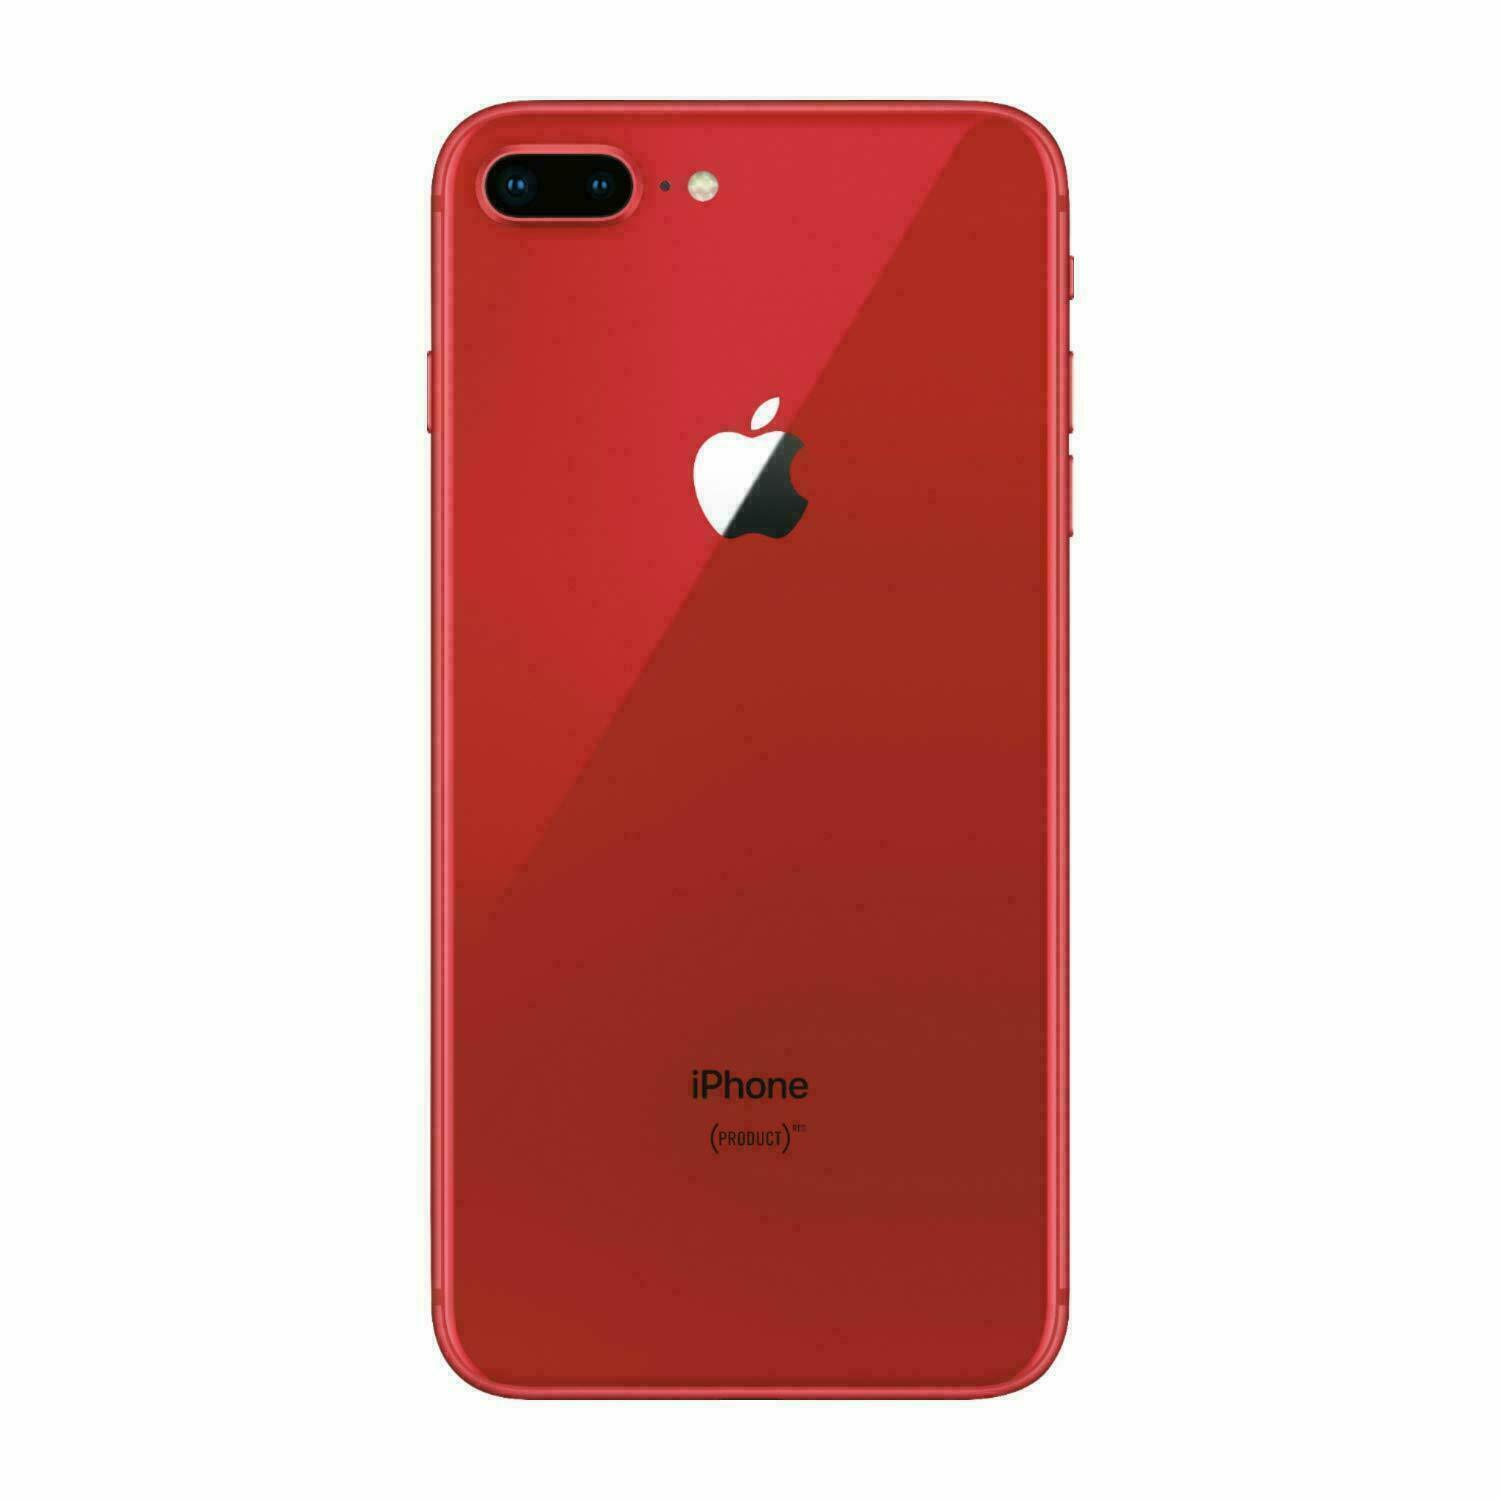 Apple iPhone 8  Unlocked 64GB - Red